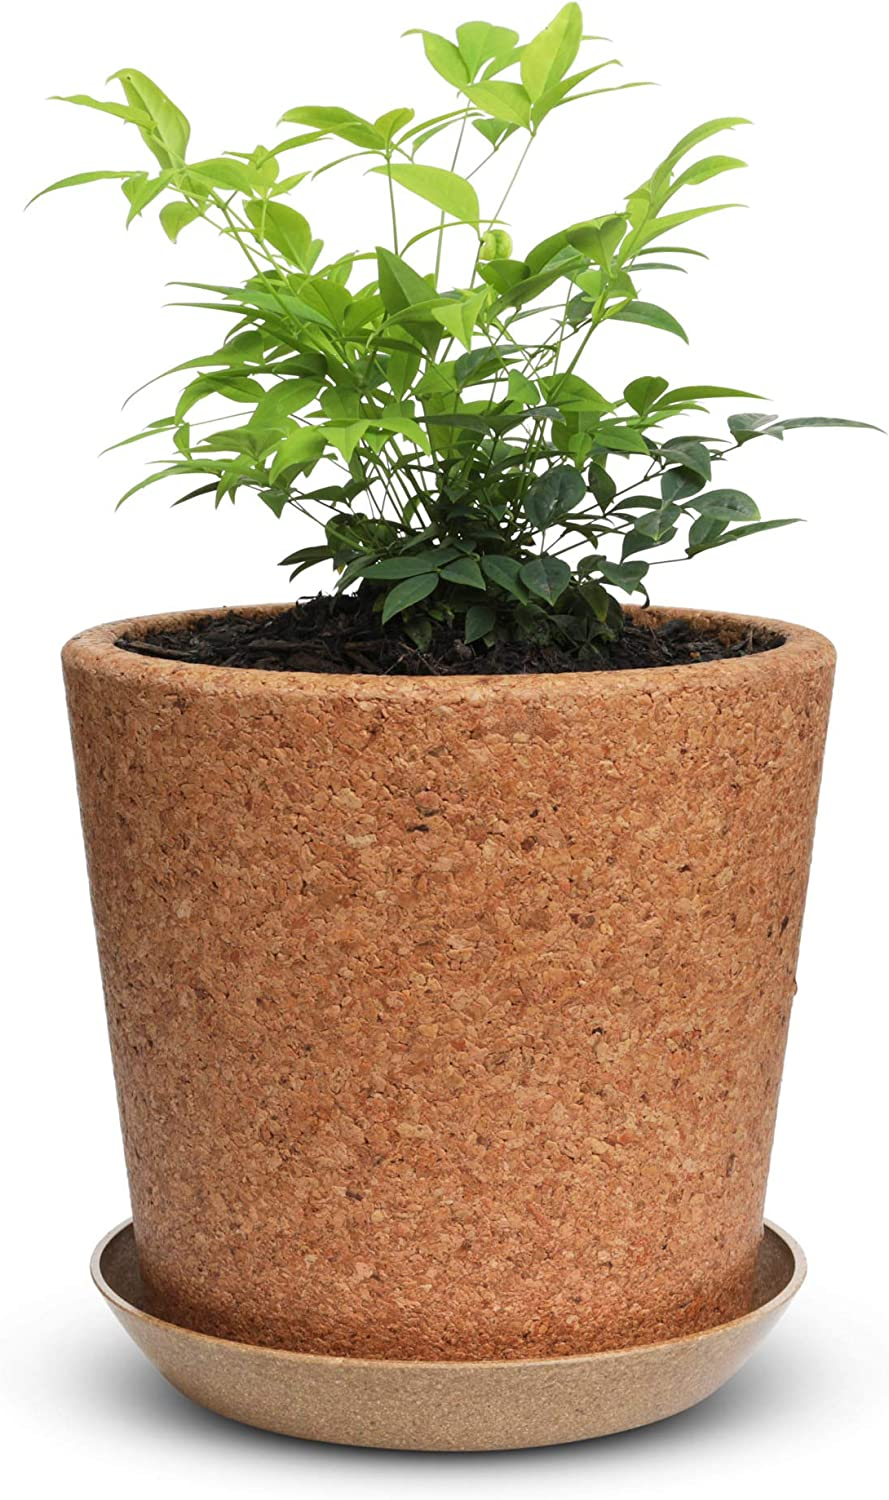 """Wild Pact 7.5"""" Cork Flower Pot with Drainage (Coarse Grain): Eco-Friendly Natural Pot for Plants - 1x Cork Pot + Rice Hull Saucer Set – Succulents, Herbs - Multi Use Indoor Planter - Gardening Gift"""